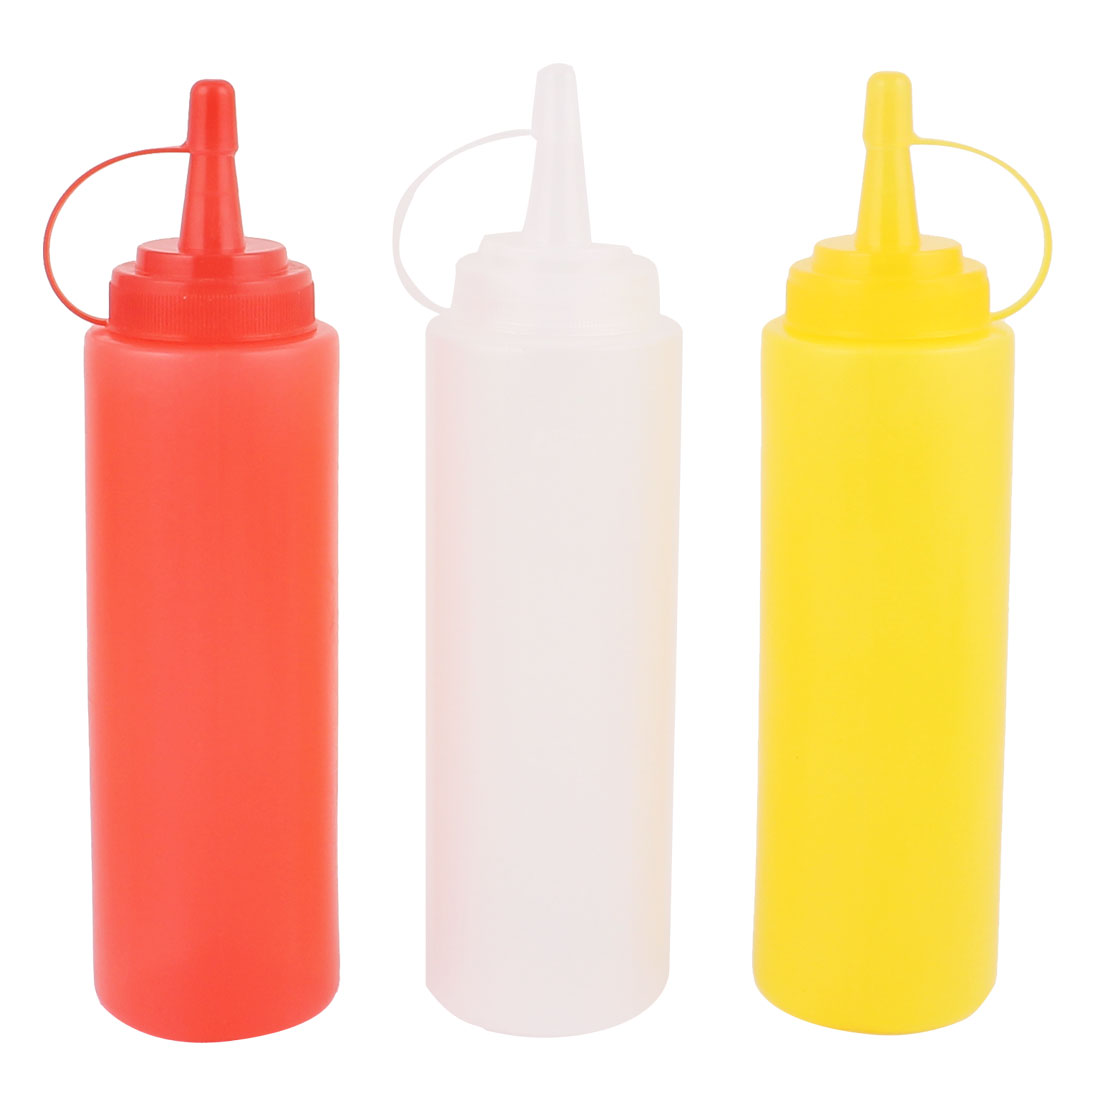 3 Pcs 200ml Oil Sauce Ketchup Squeeze Dispensing Bottle For Kitchen